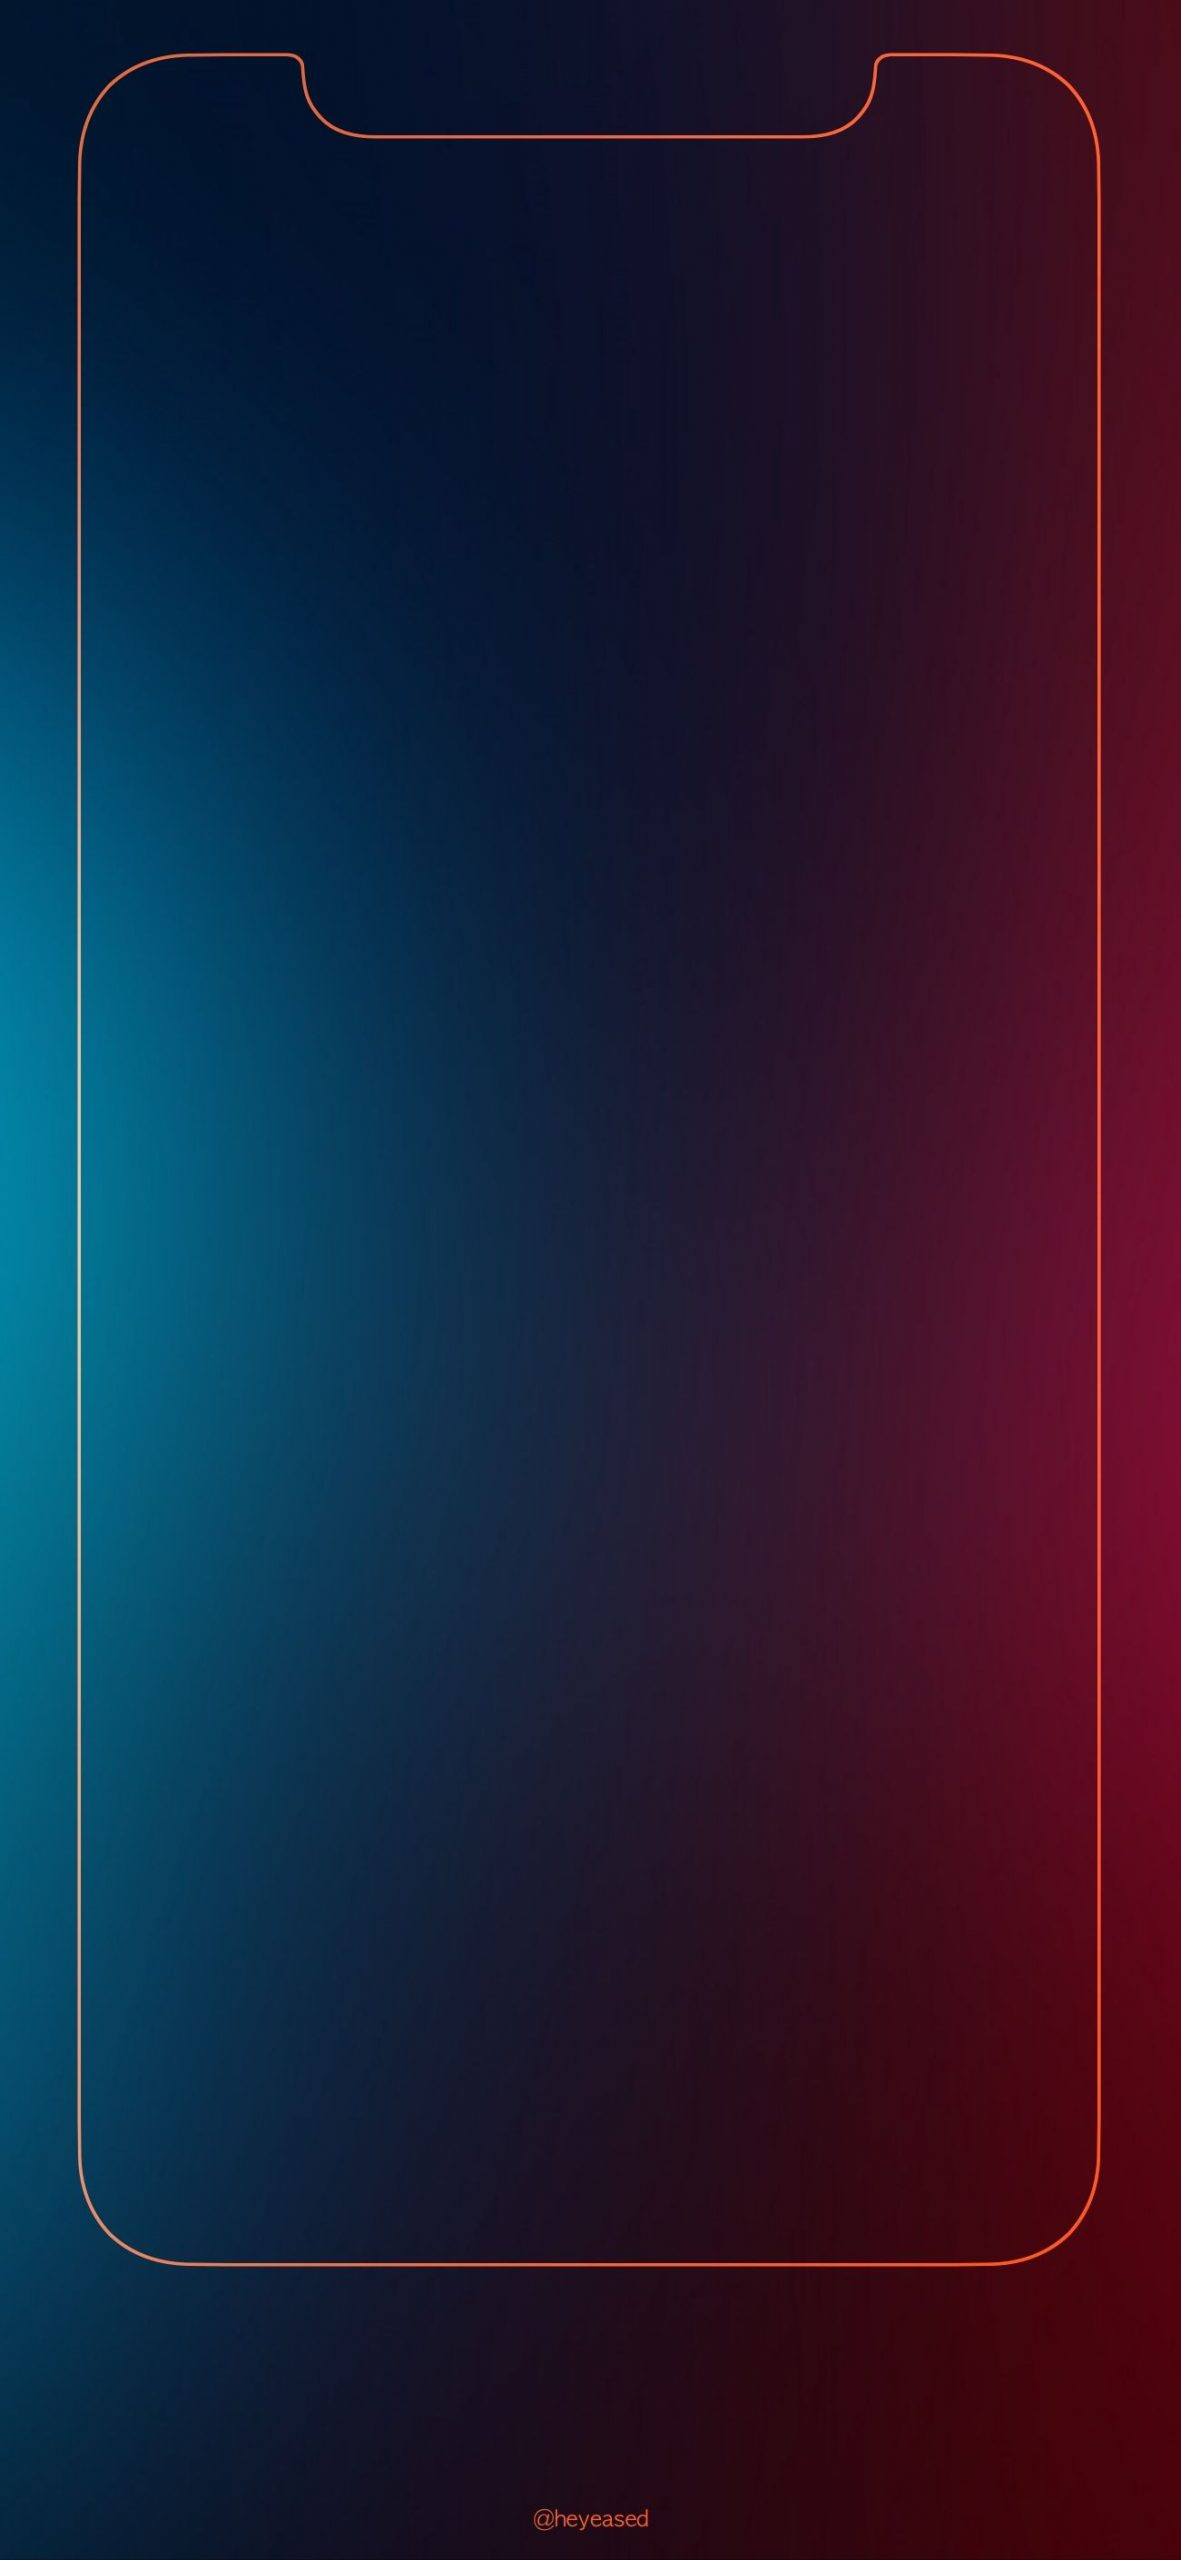 border iphone 7 wallpapers